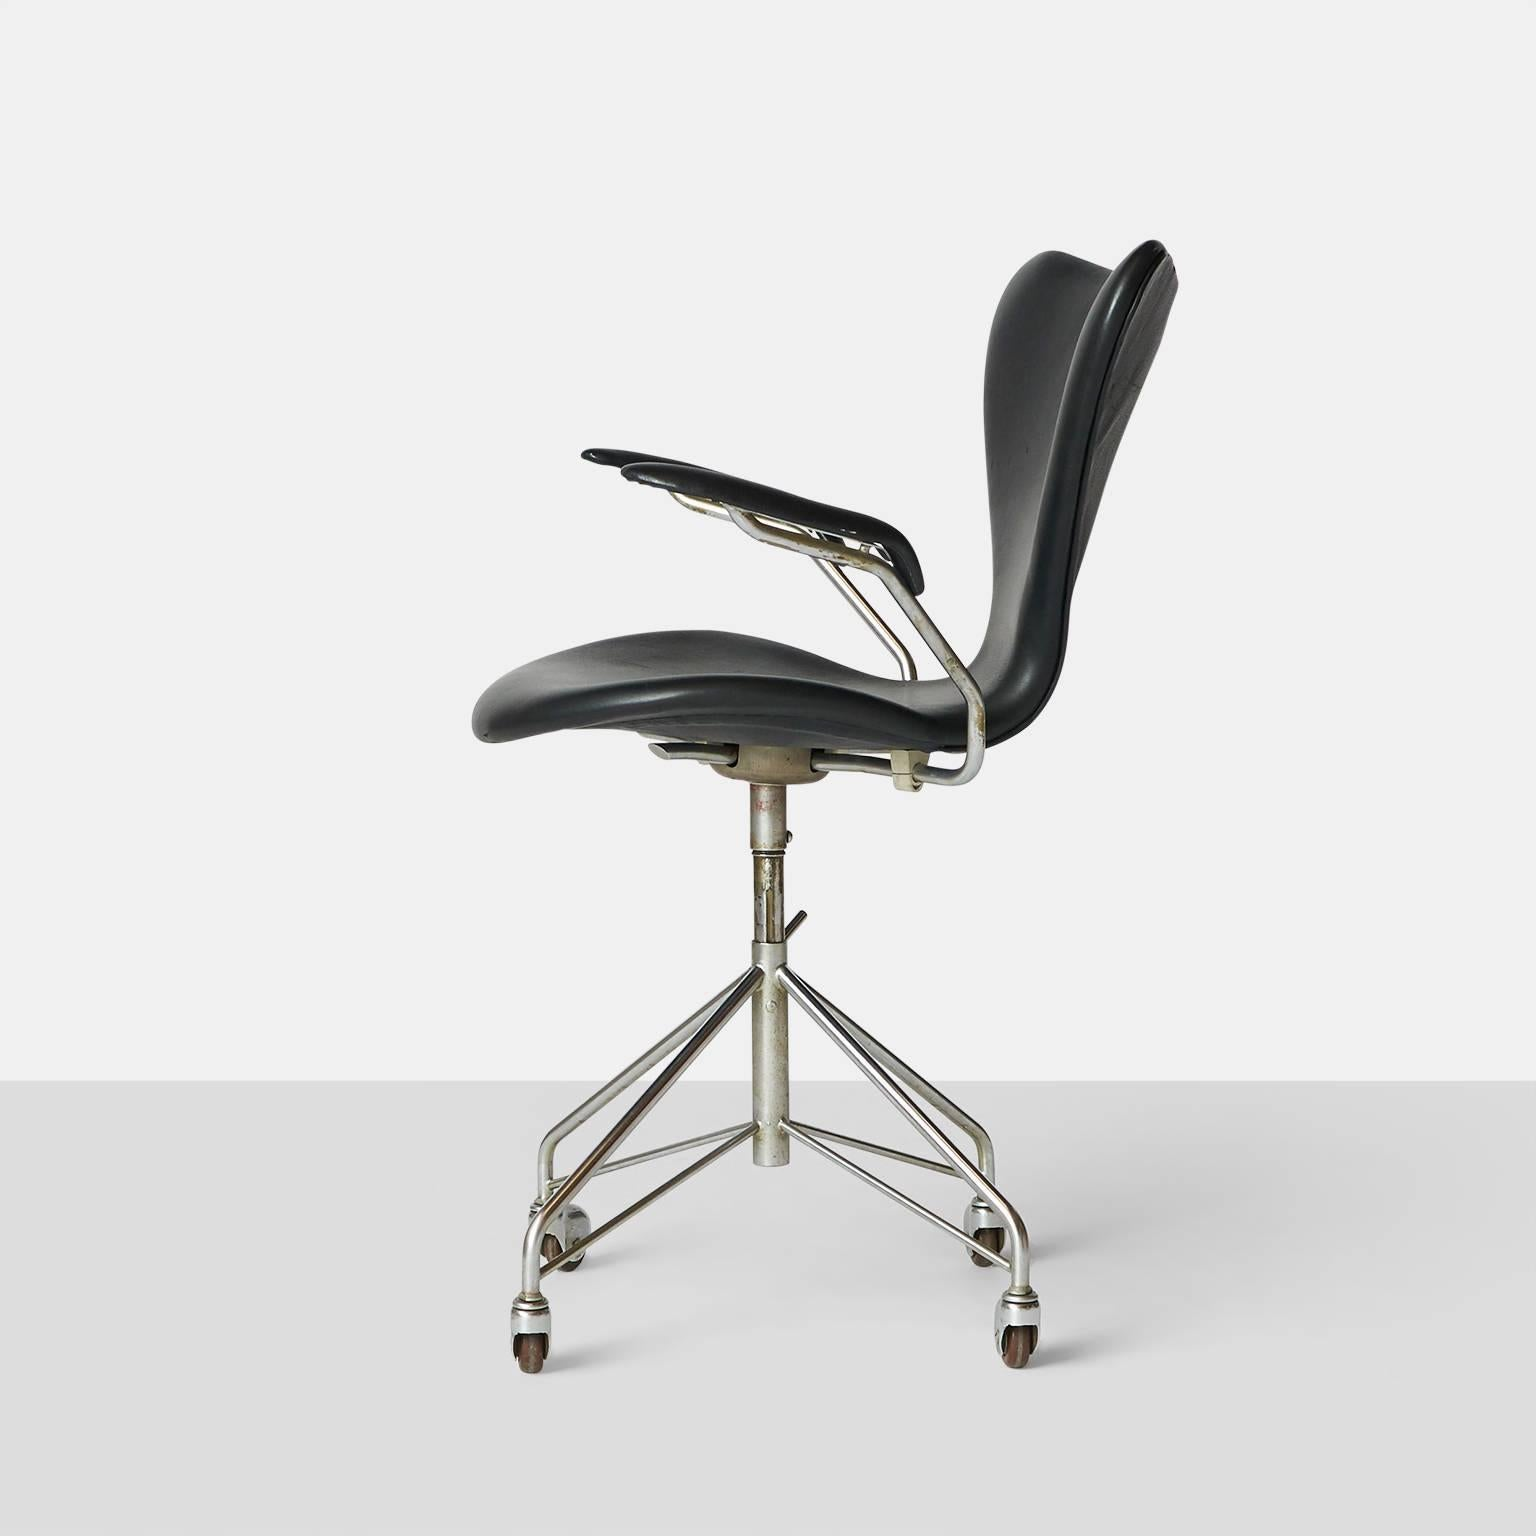 Arne Jacobsen Swivel Desk Chair Model 3217 For Sale at 1stdibs